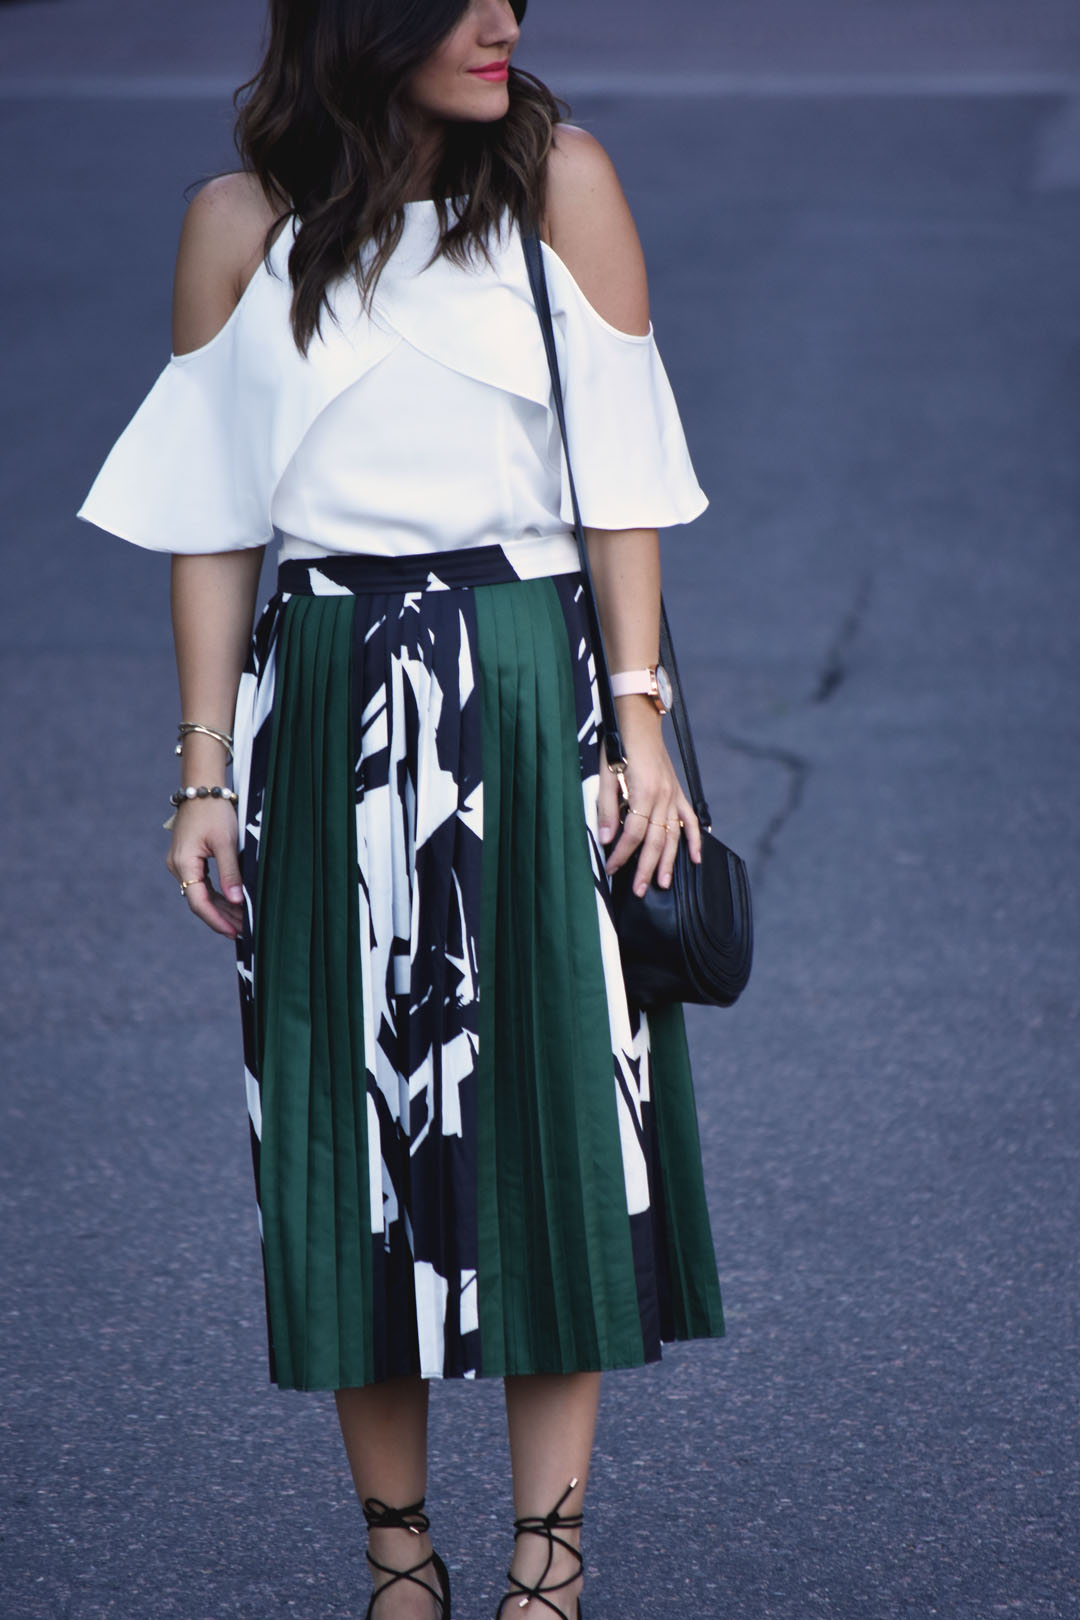 Chicwish pleated green skirt and cold shoulder white top